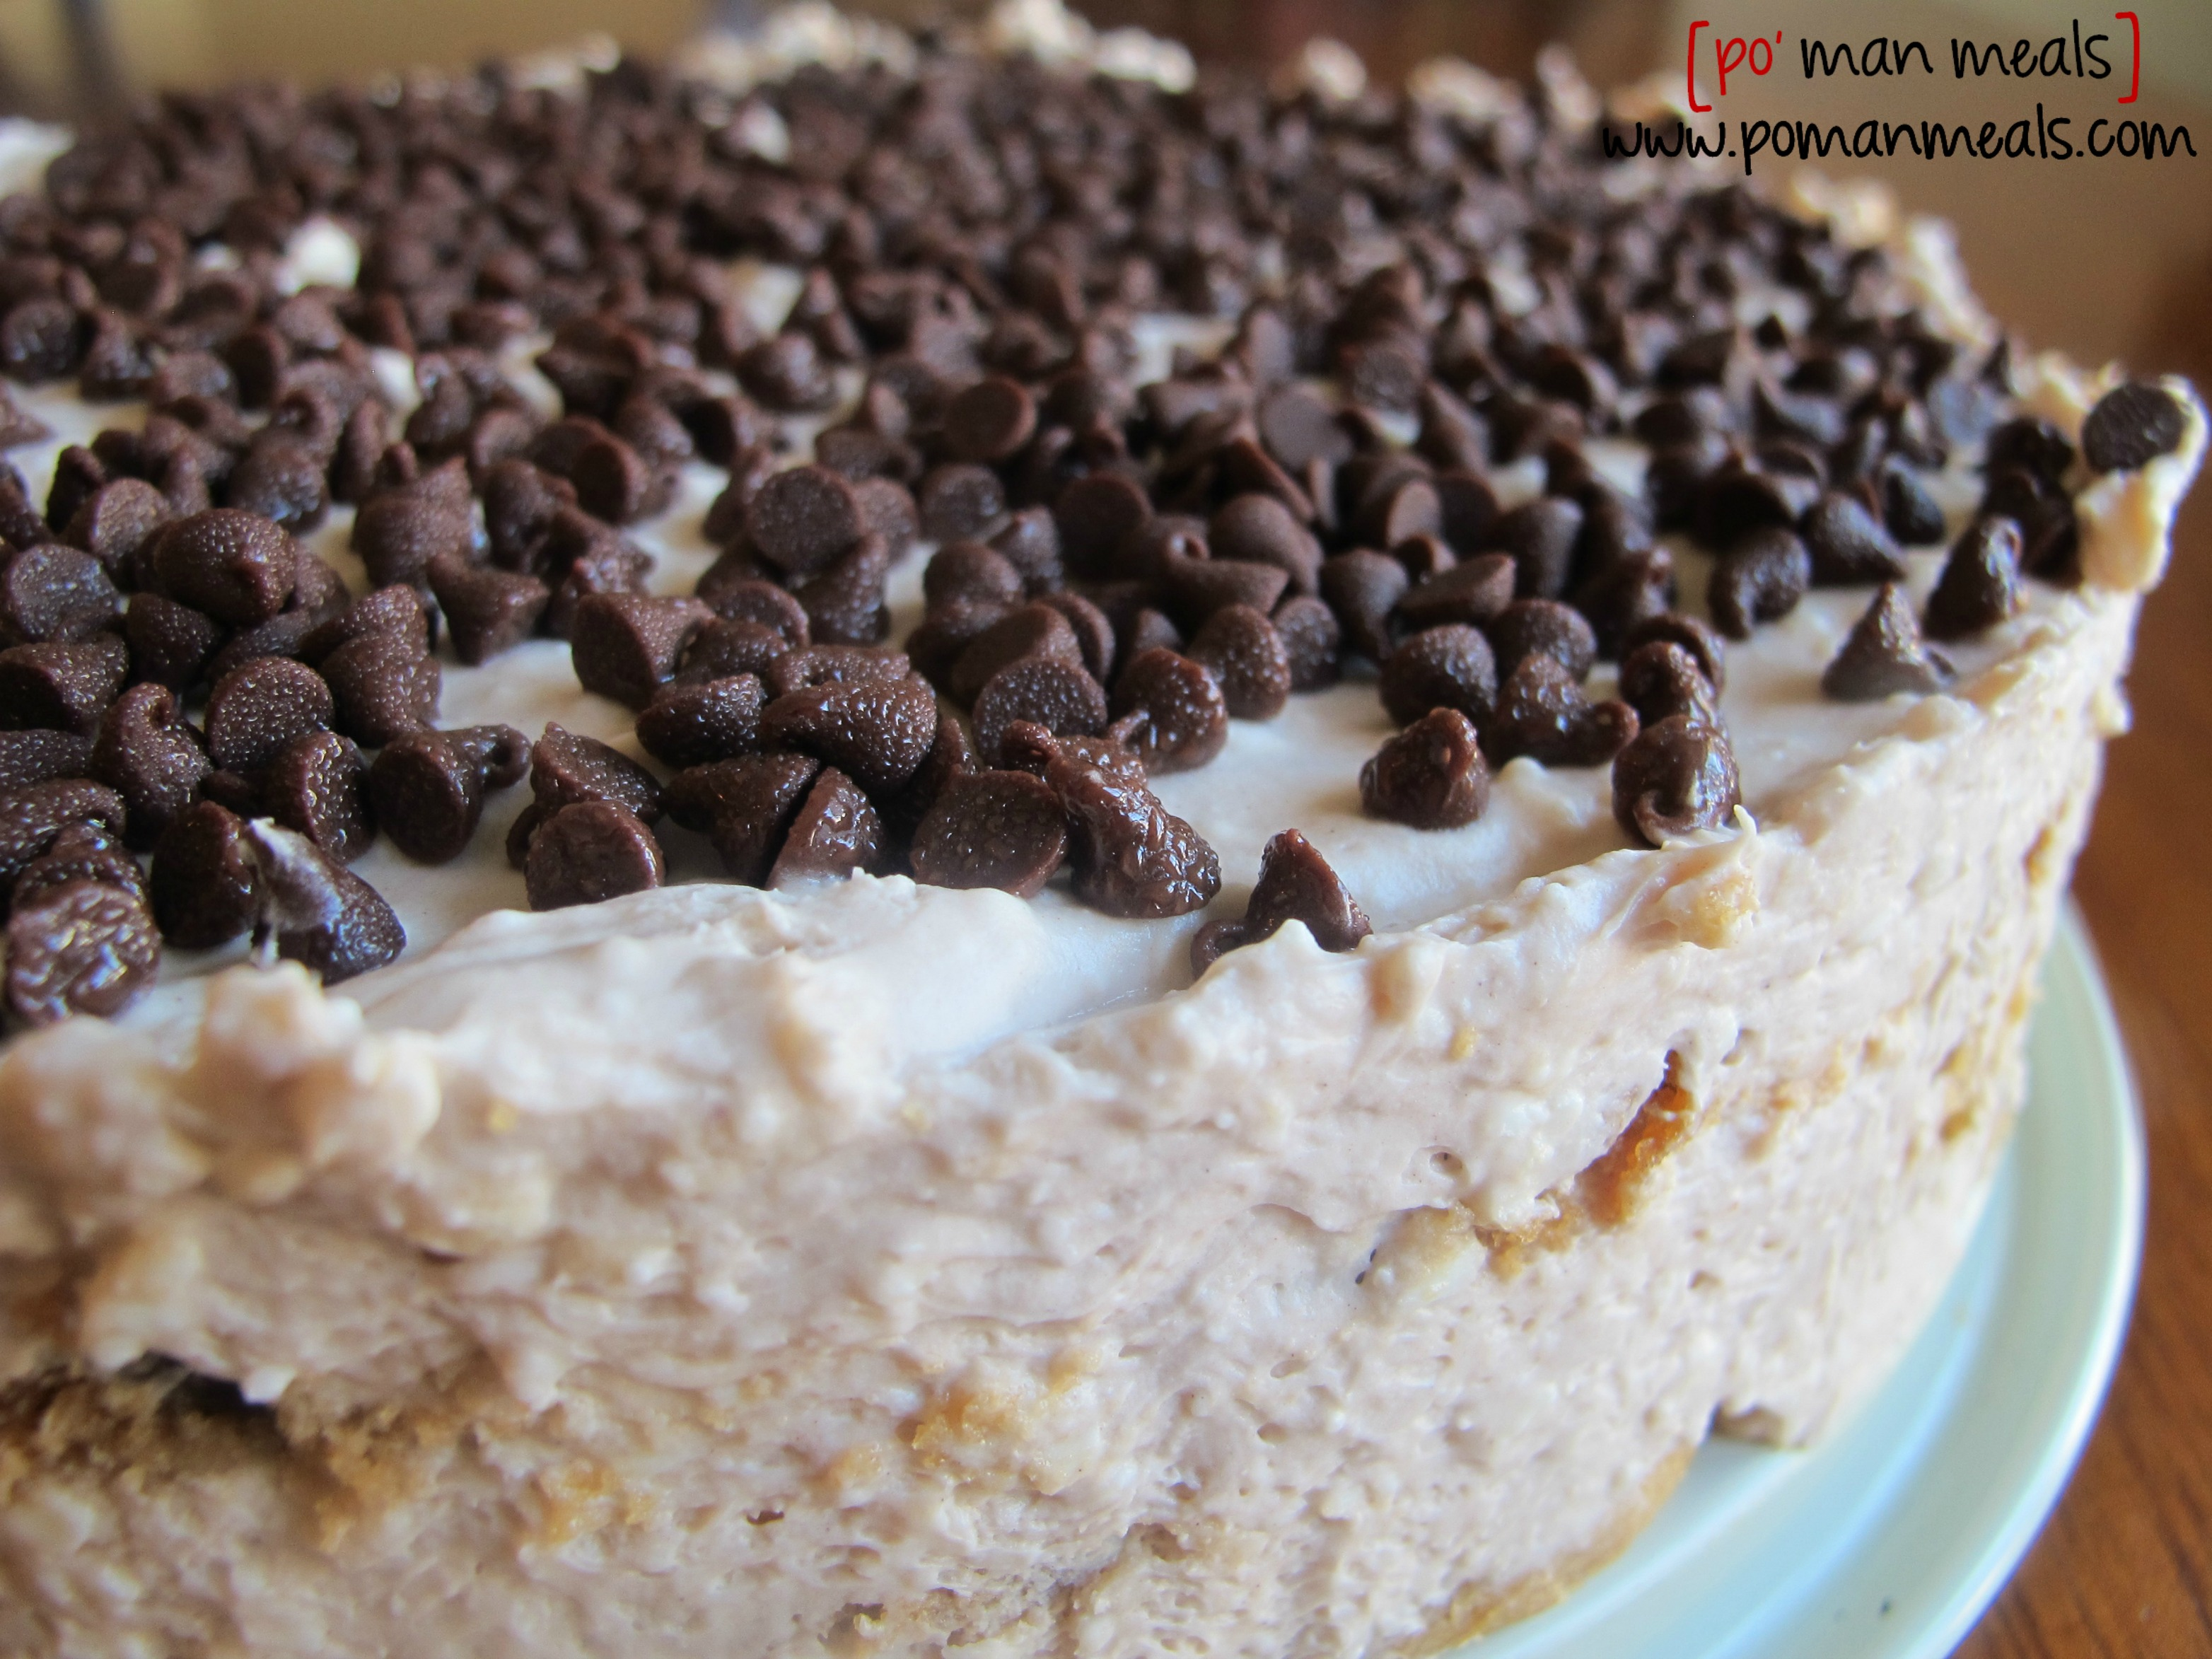 po' man meals - chocolate chip icebox cake